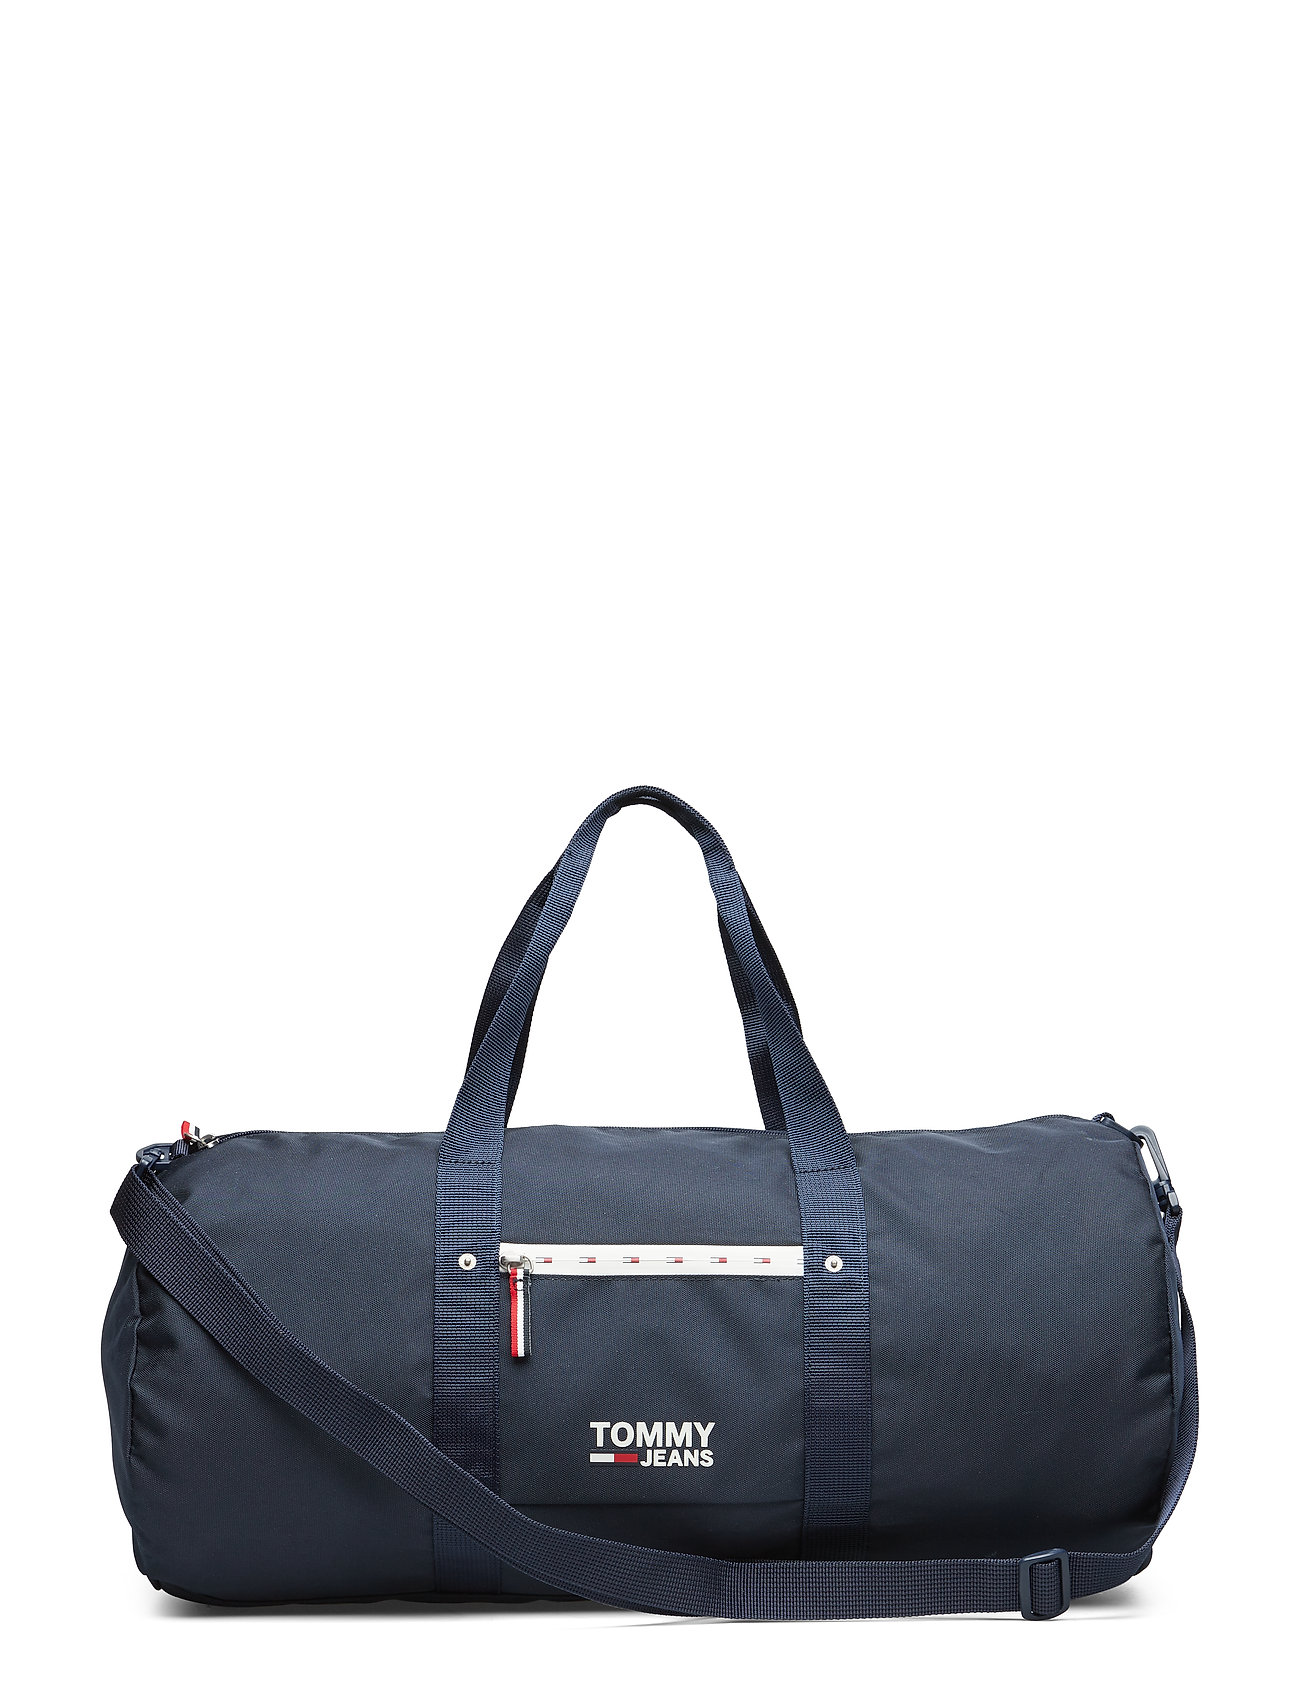 Tommy Hilfiger TJM COOL CITY DUFFLE - BLACK IRIS